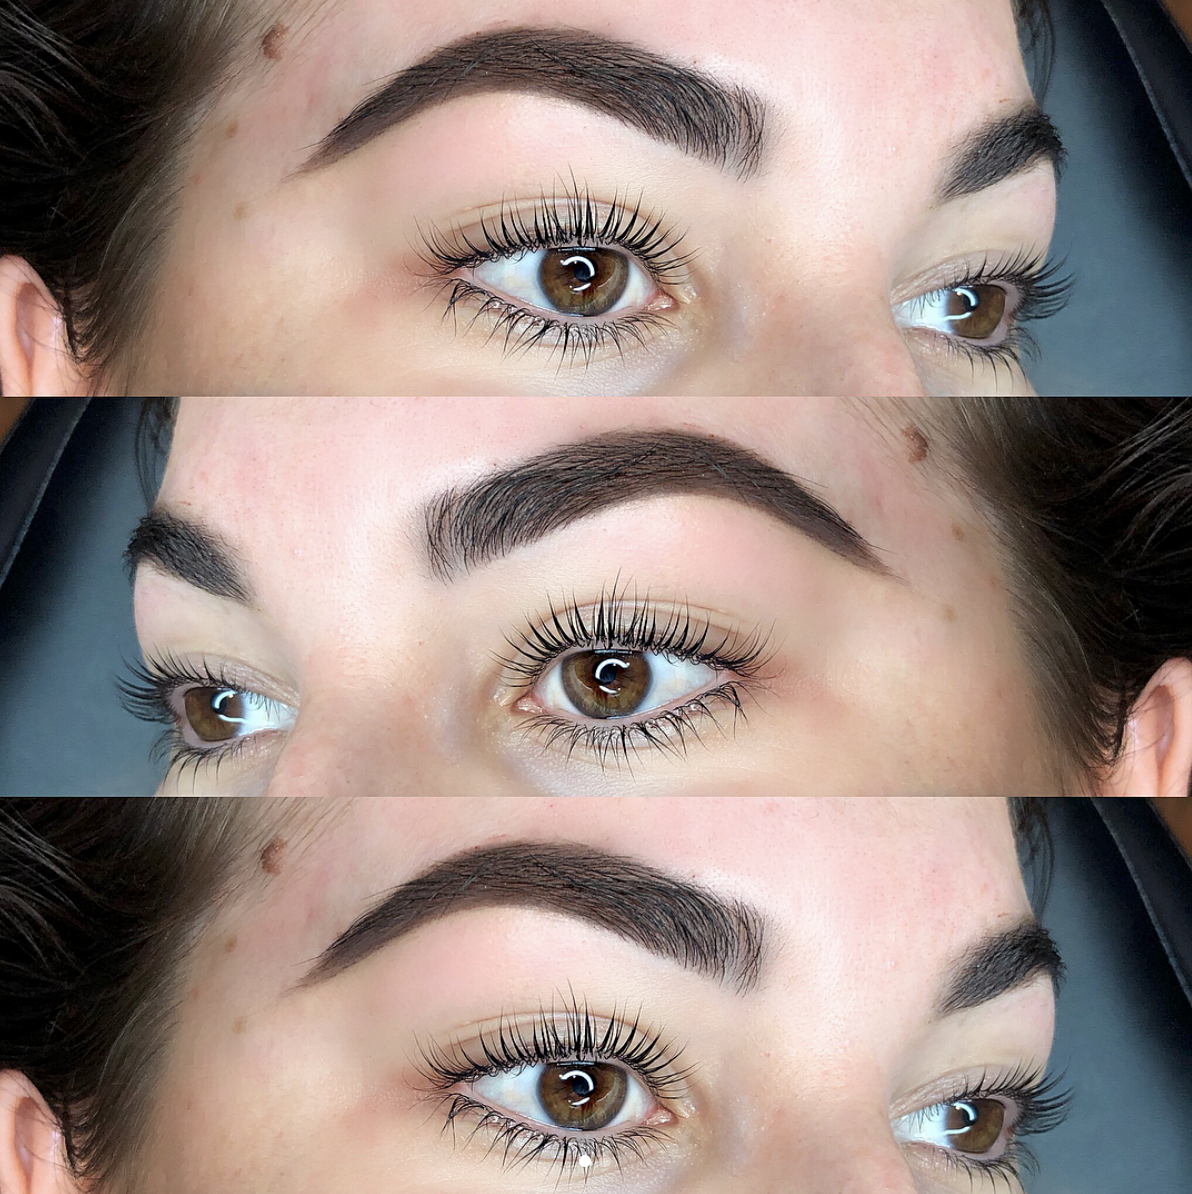 BROW STYLE & LASH LIFT PACKAGE - $130   This package is what everyone dreams are made of! Great brows and long lashes. Seriously, what more could you want!  During this treatment you will receive only the best brows from only the best brow doctor PLUS you get a lash lift AND tint!